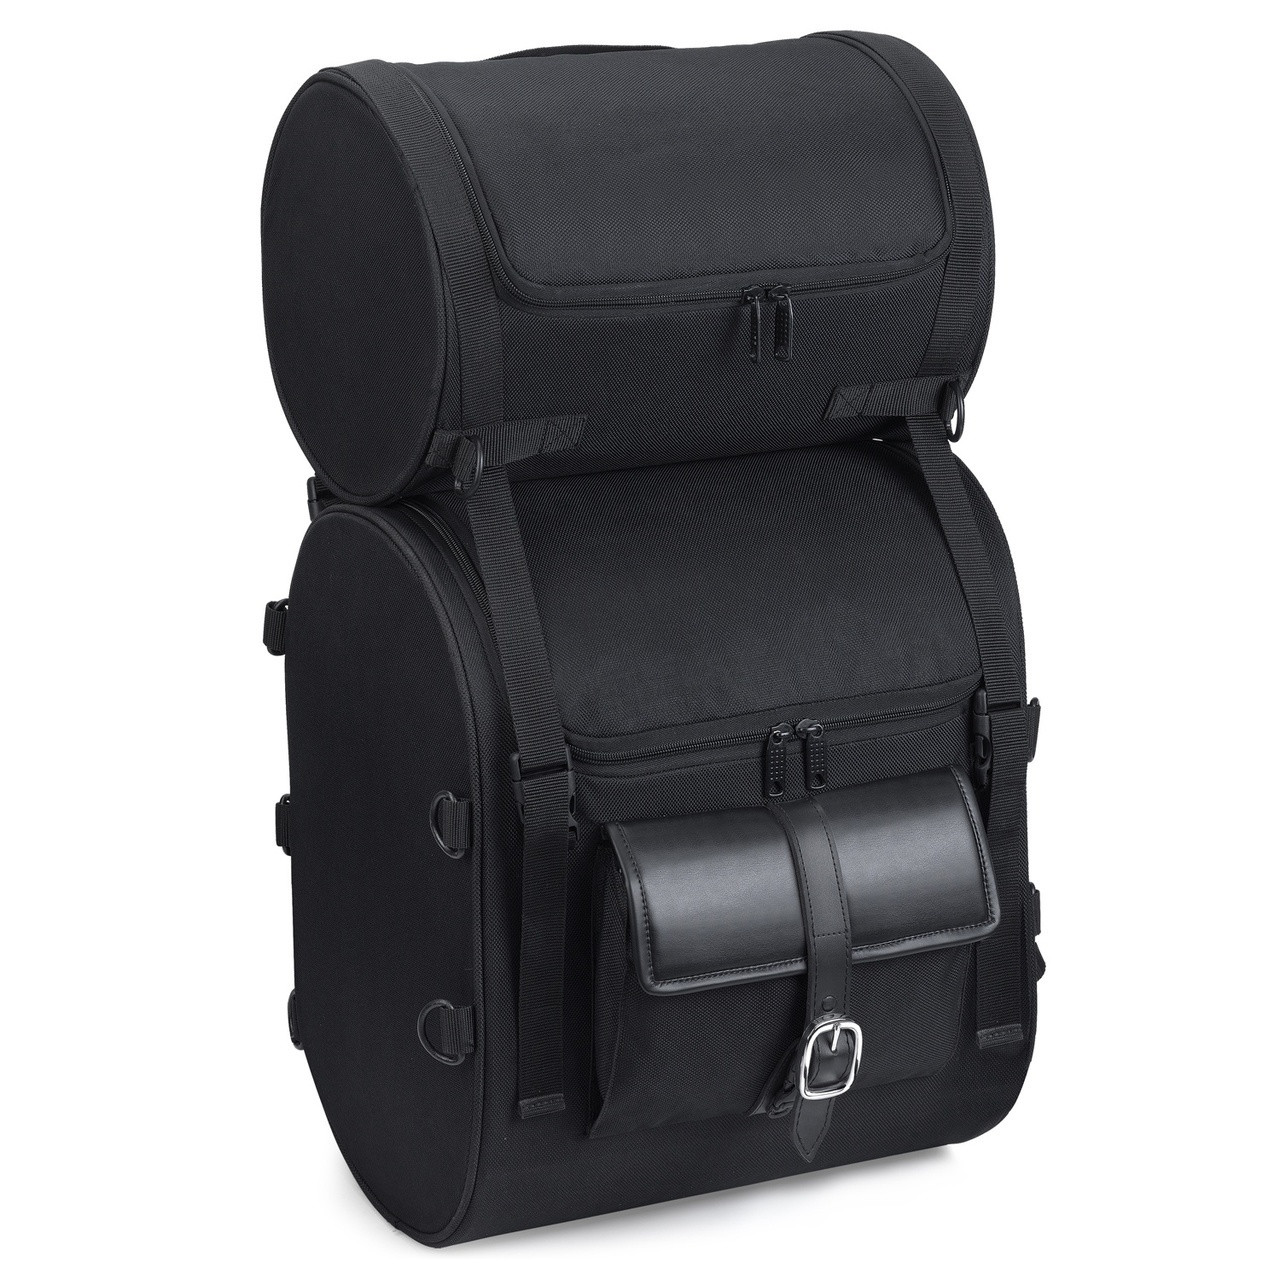 Economy Line Motorcycle Luggage with top Roll